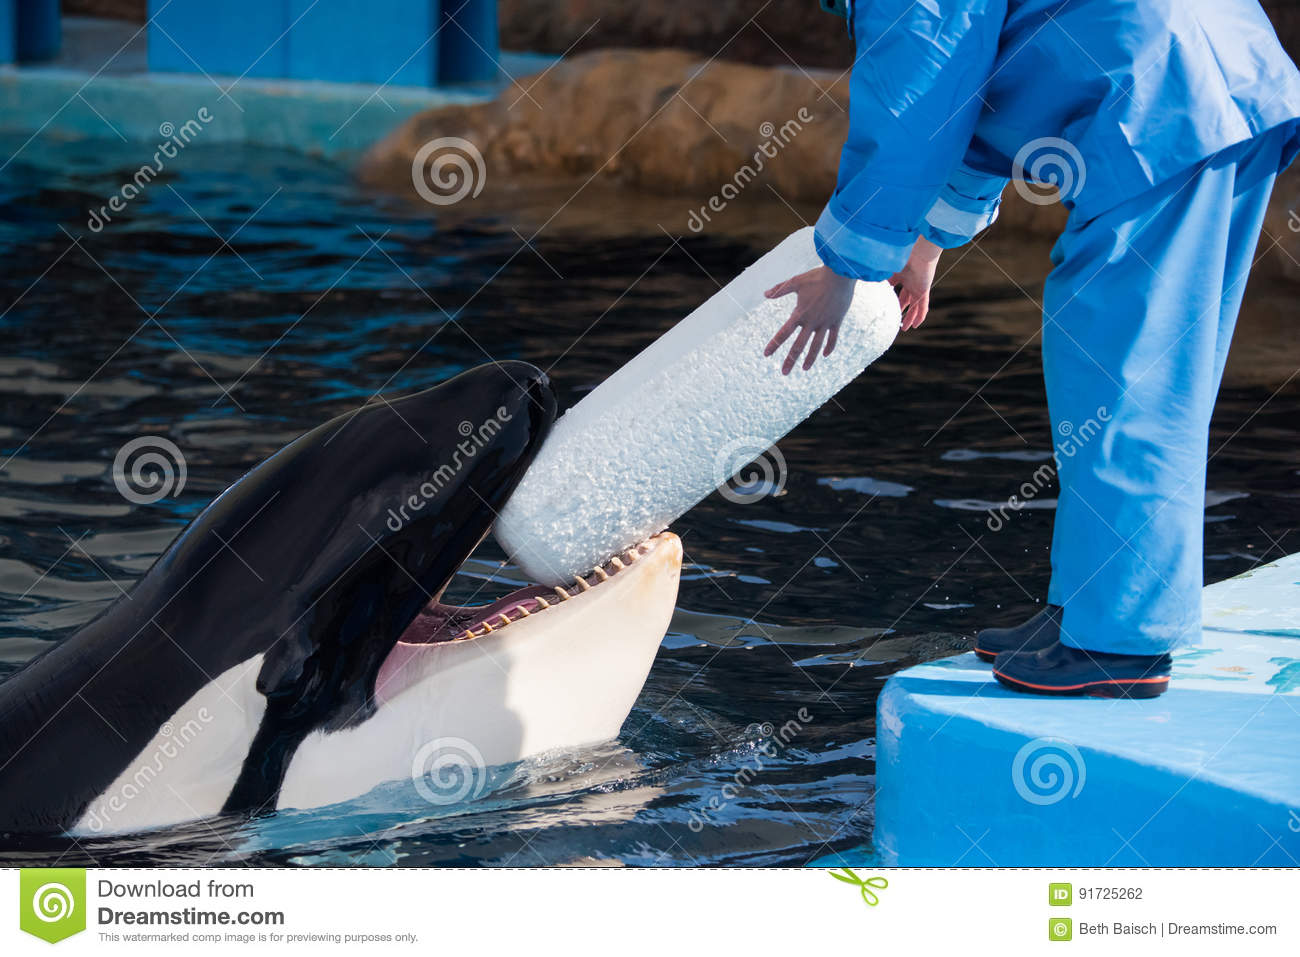 Killer Whale With Trainer and Toy in Japan